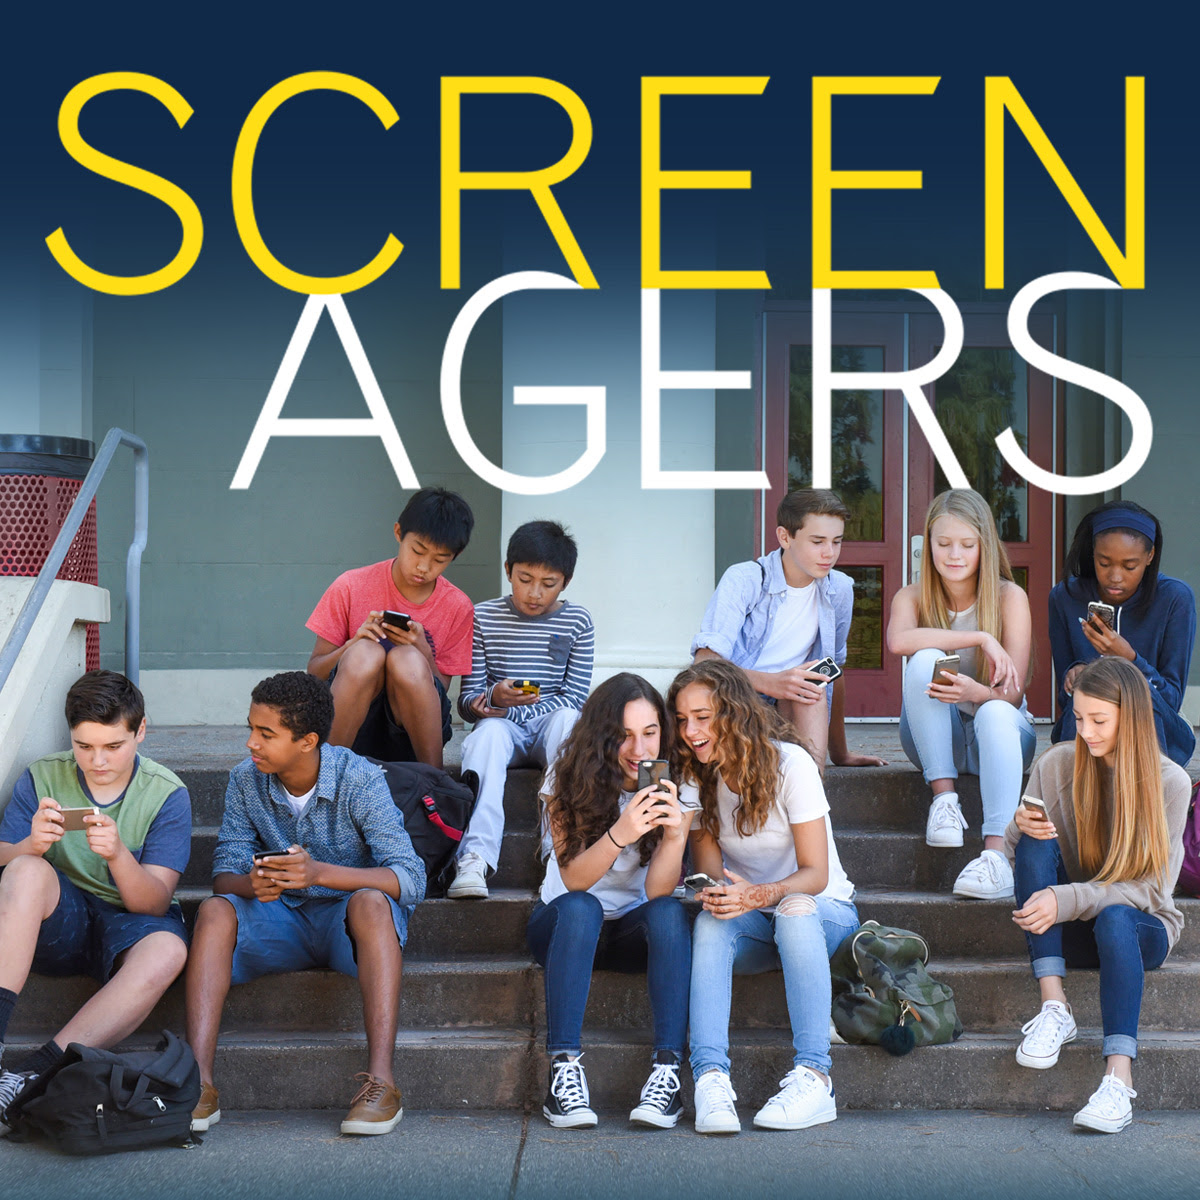 Screenagers Film Presented By Tall Pines STEM Academy